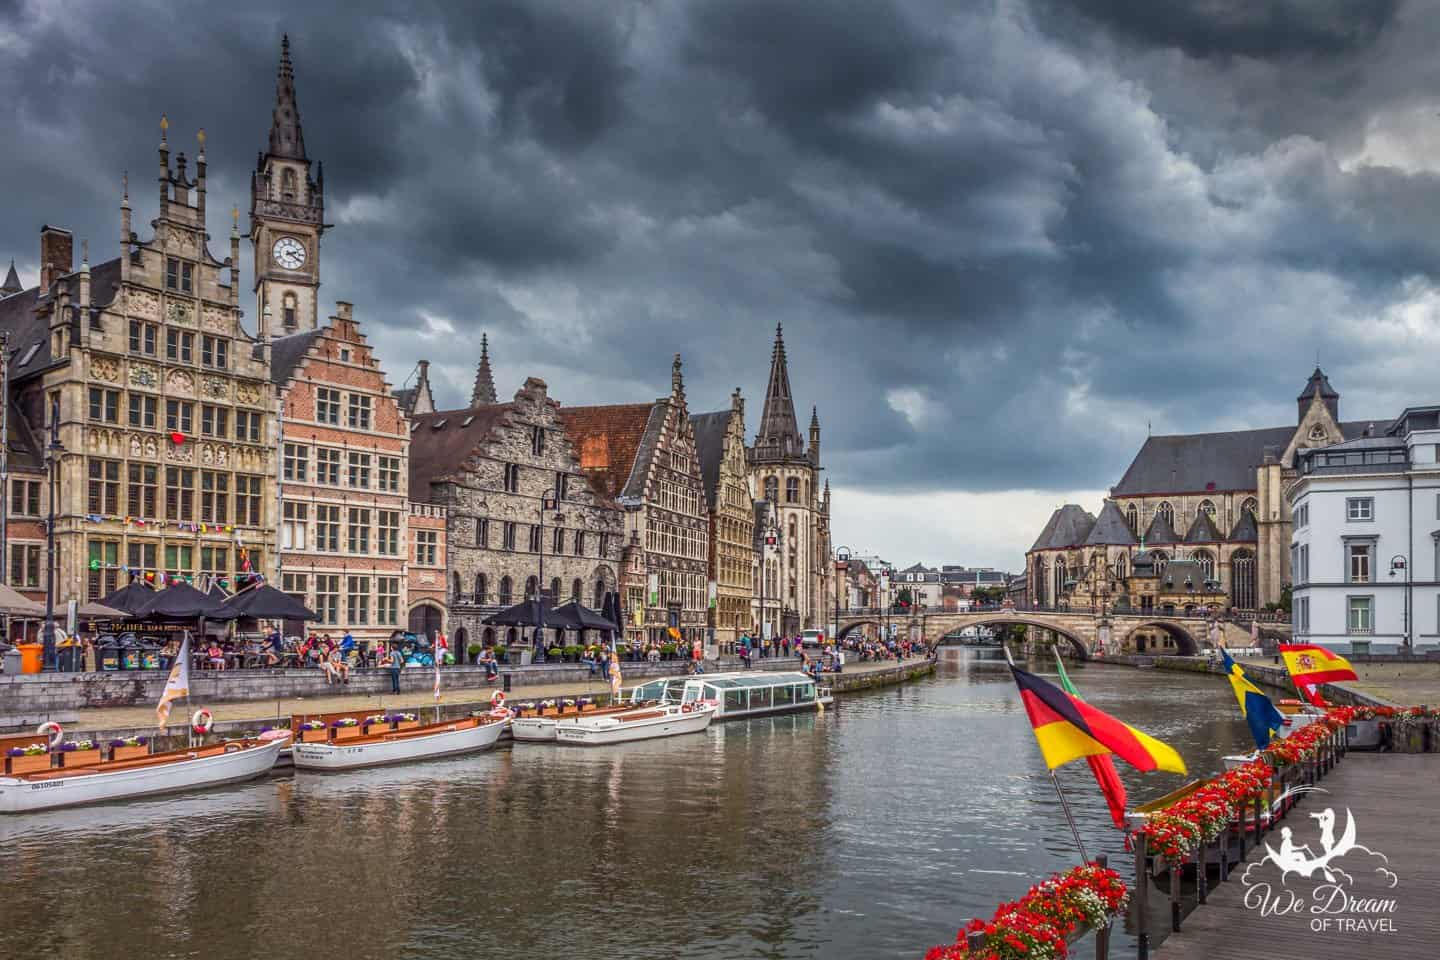 The moody weather and the gothic architecture of Ghent create a dramatic destination.